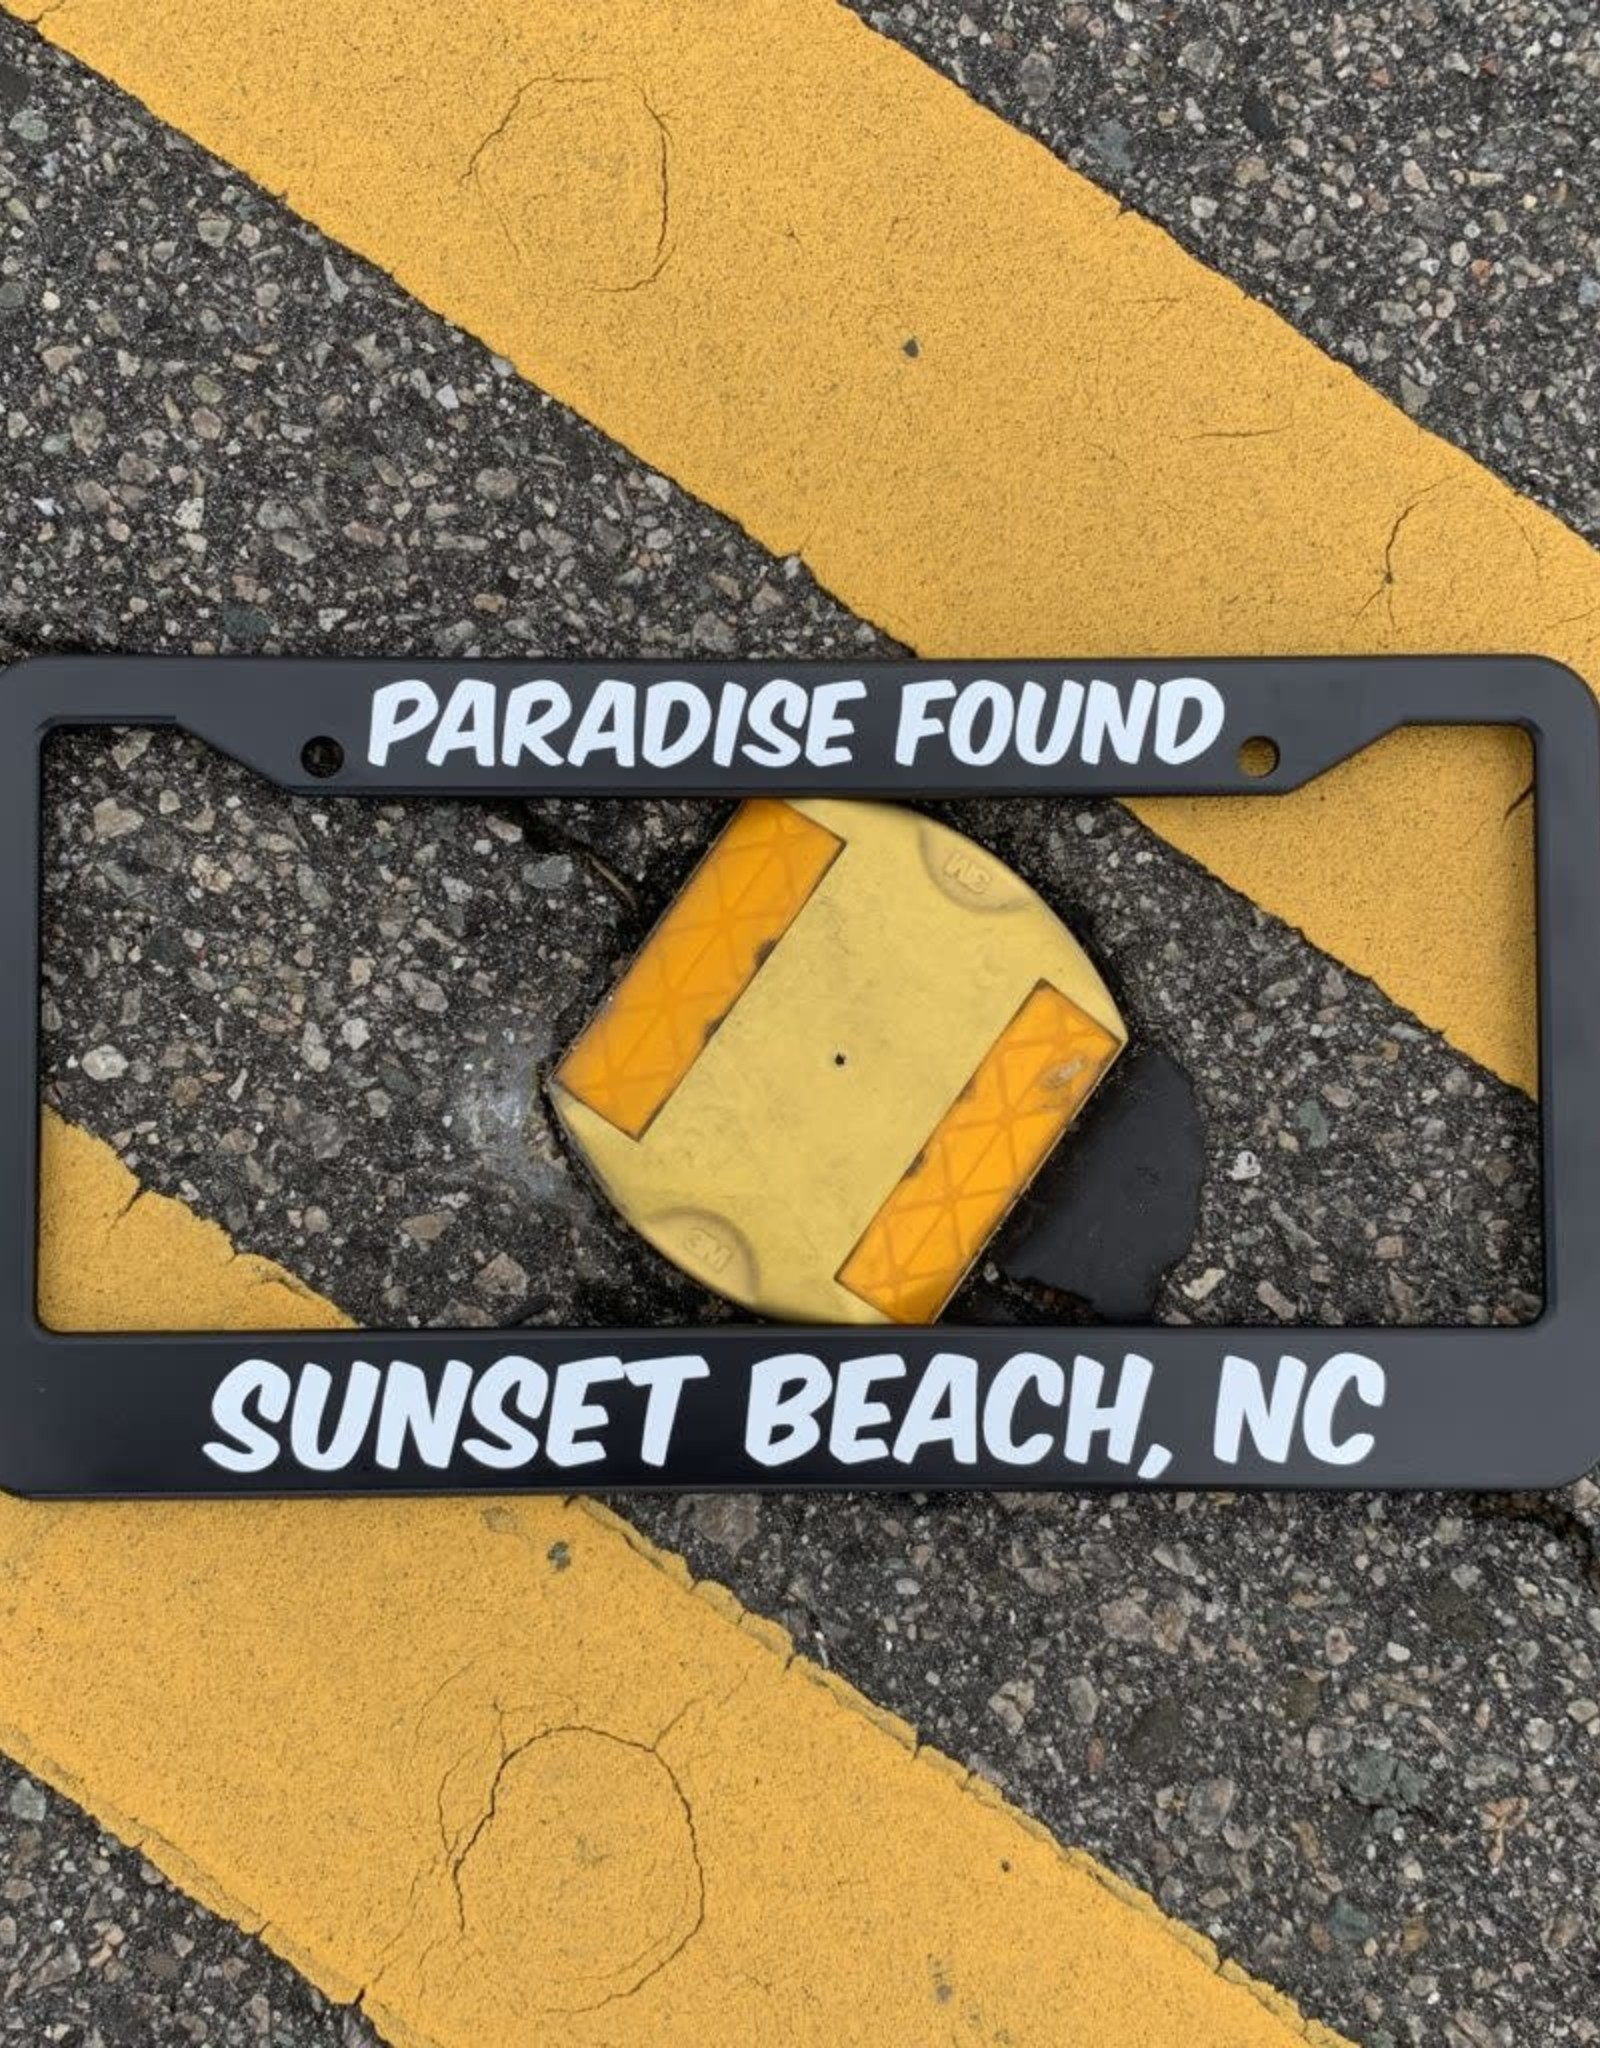 PARADISE FOUND LICENSE PLATE FRAME